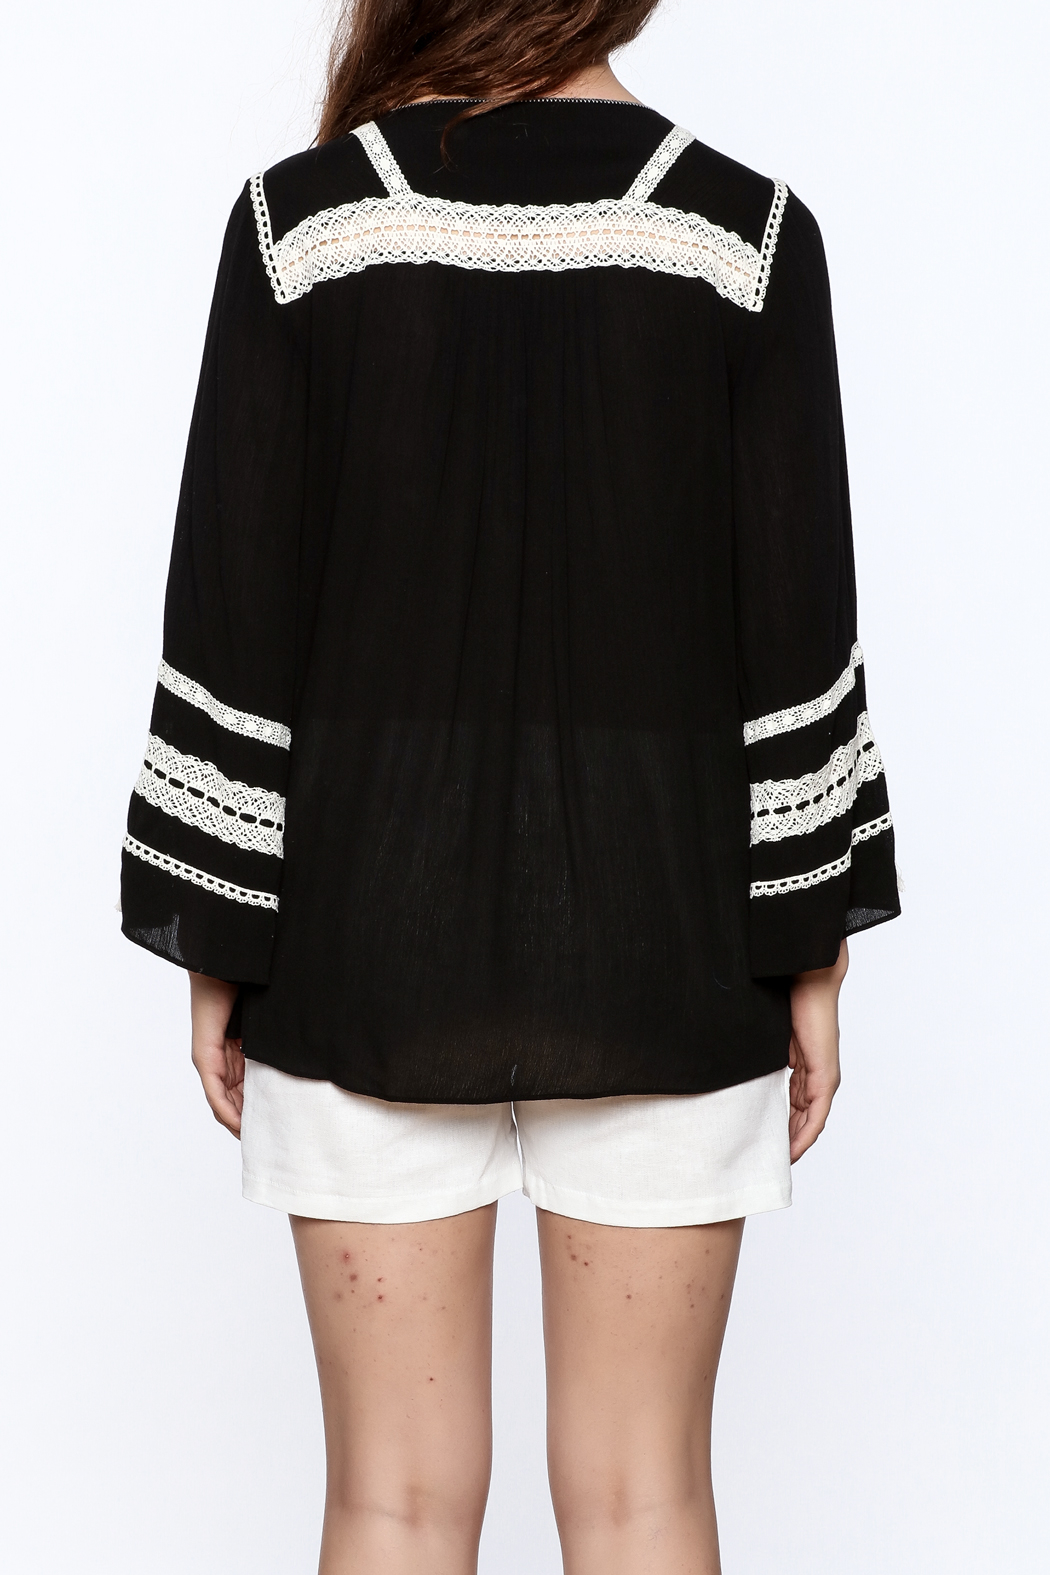 Hale Bob Black Embroidered Tunic Top - Back Cropped Image